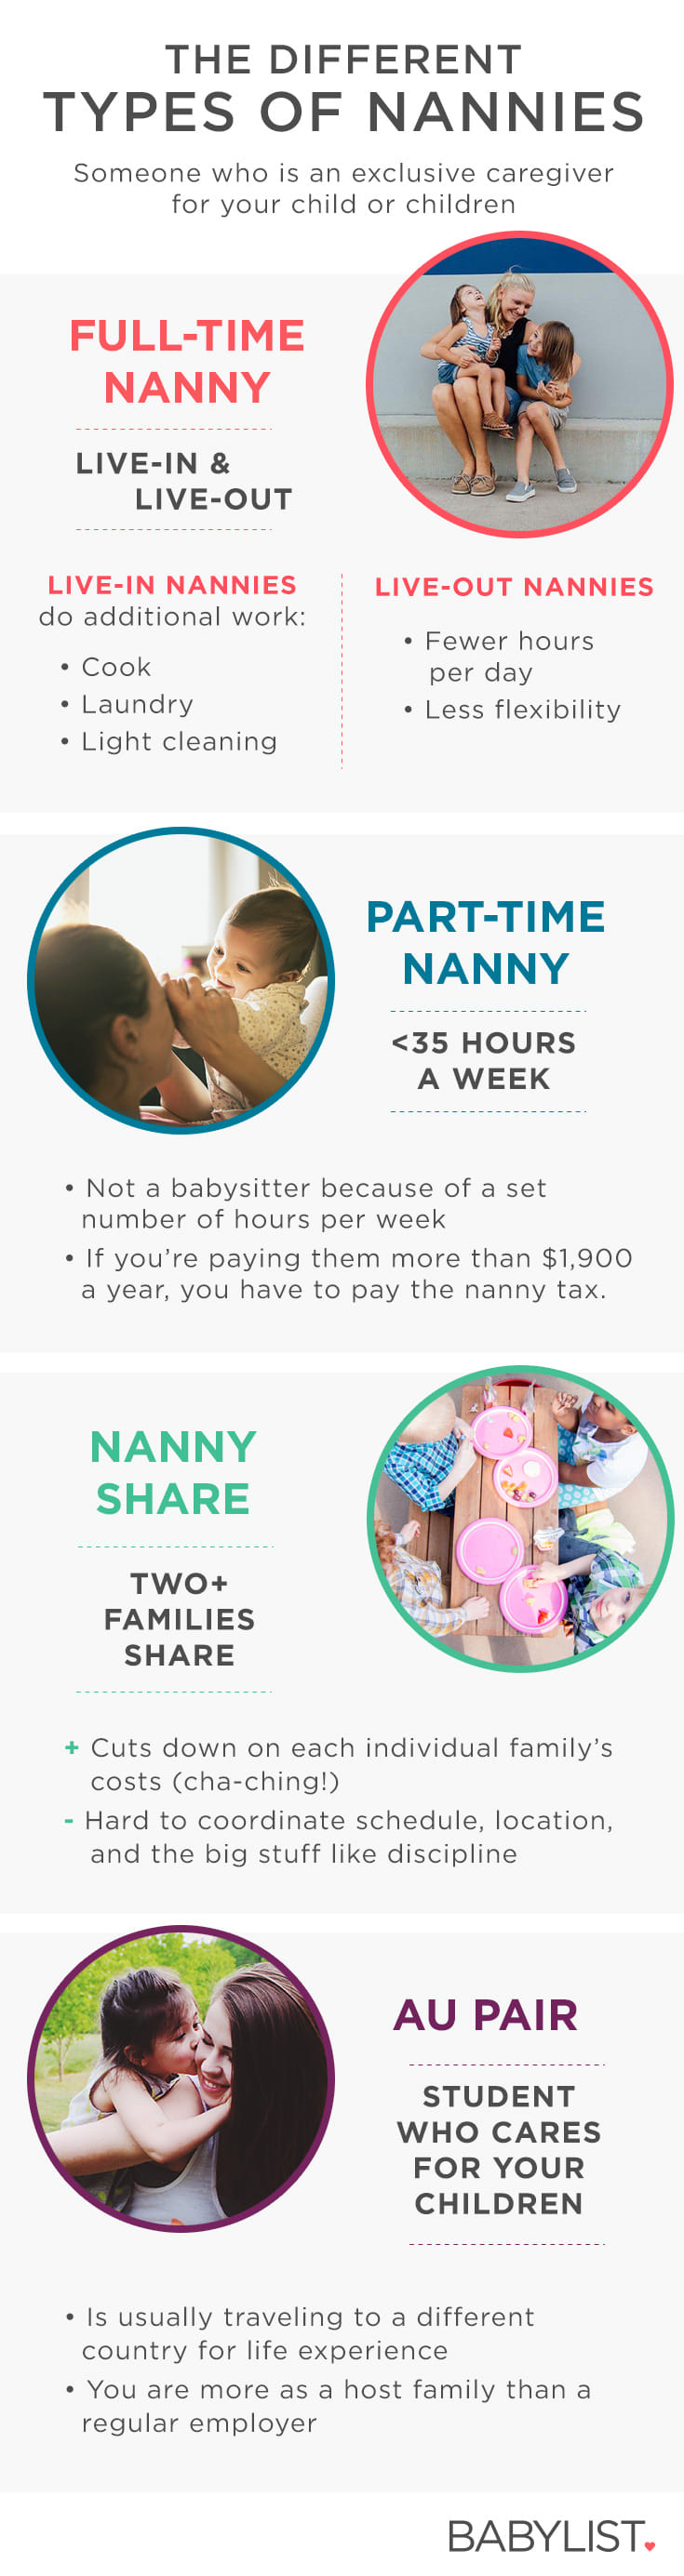 Considering a nanny for your family? Start here to find out what it really costs.